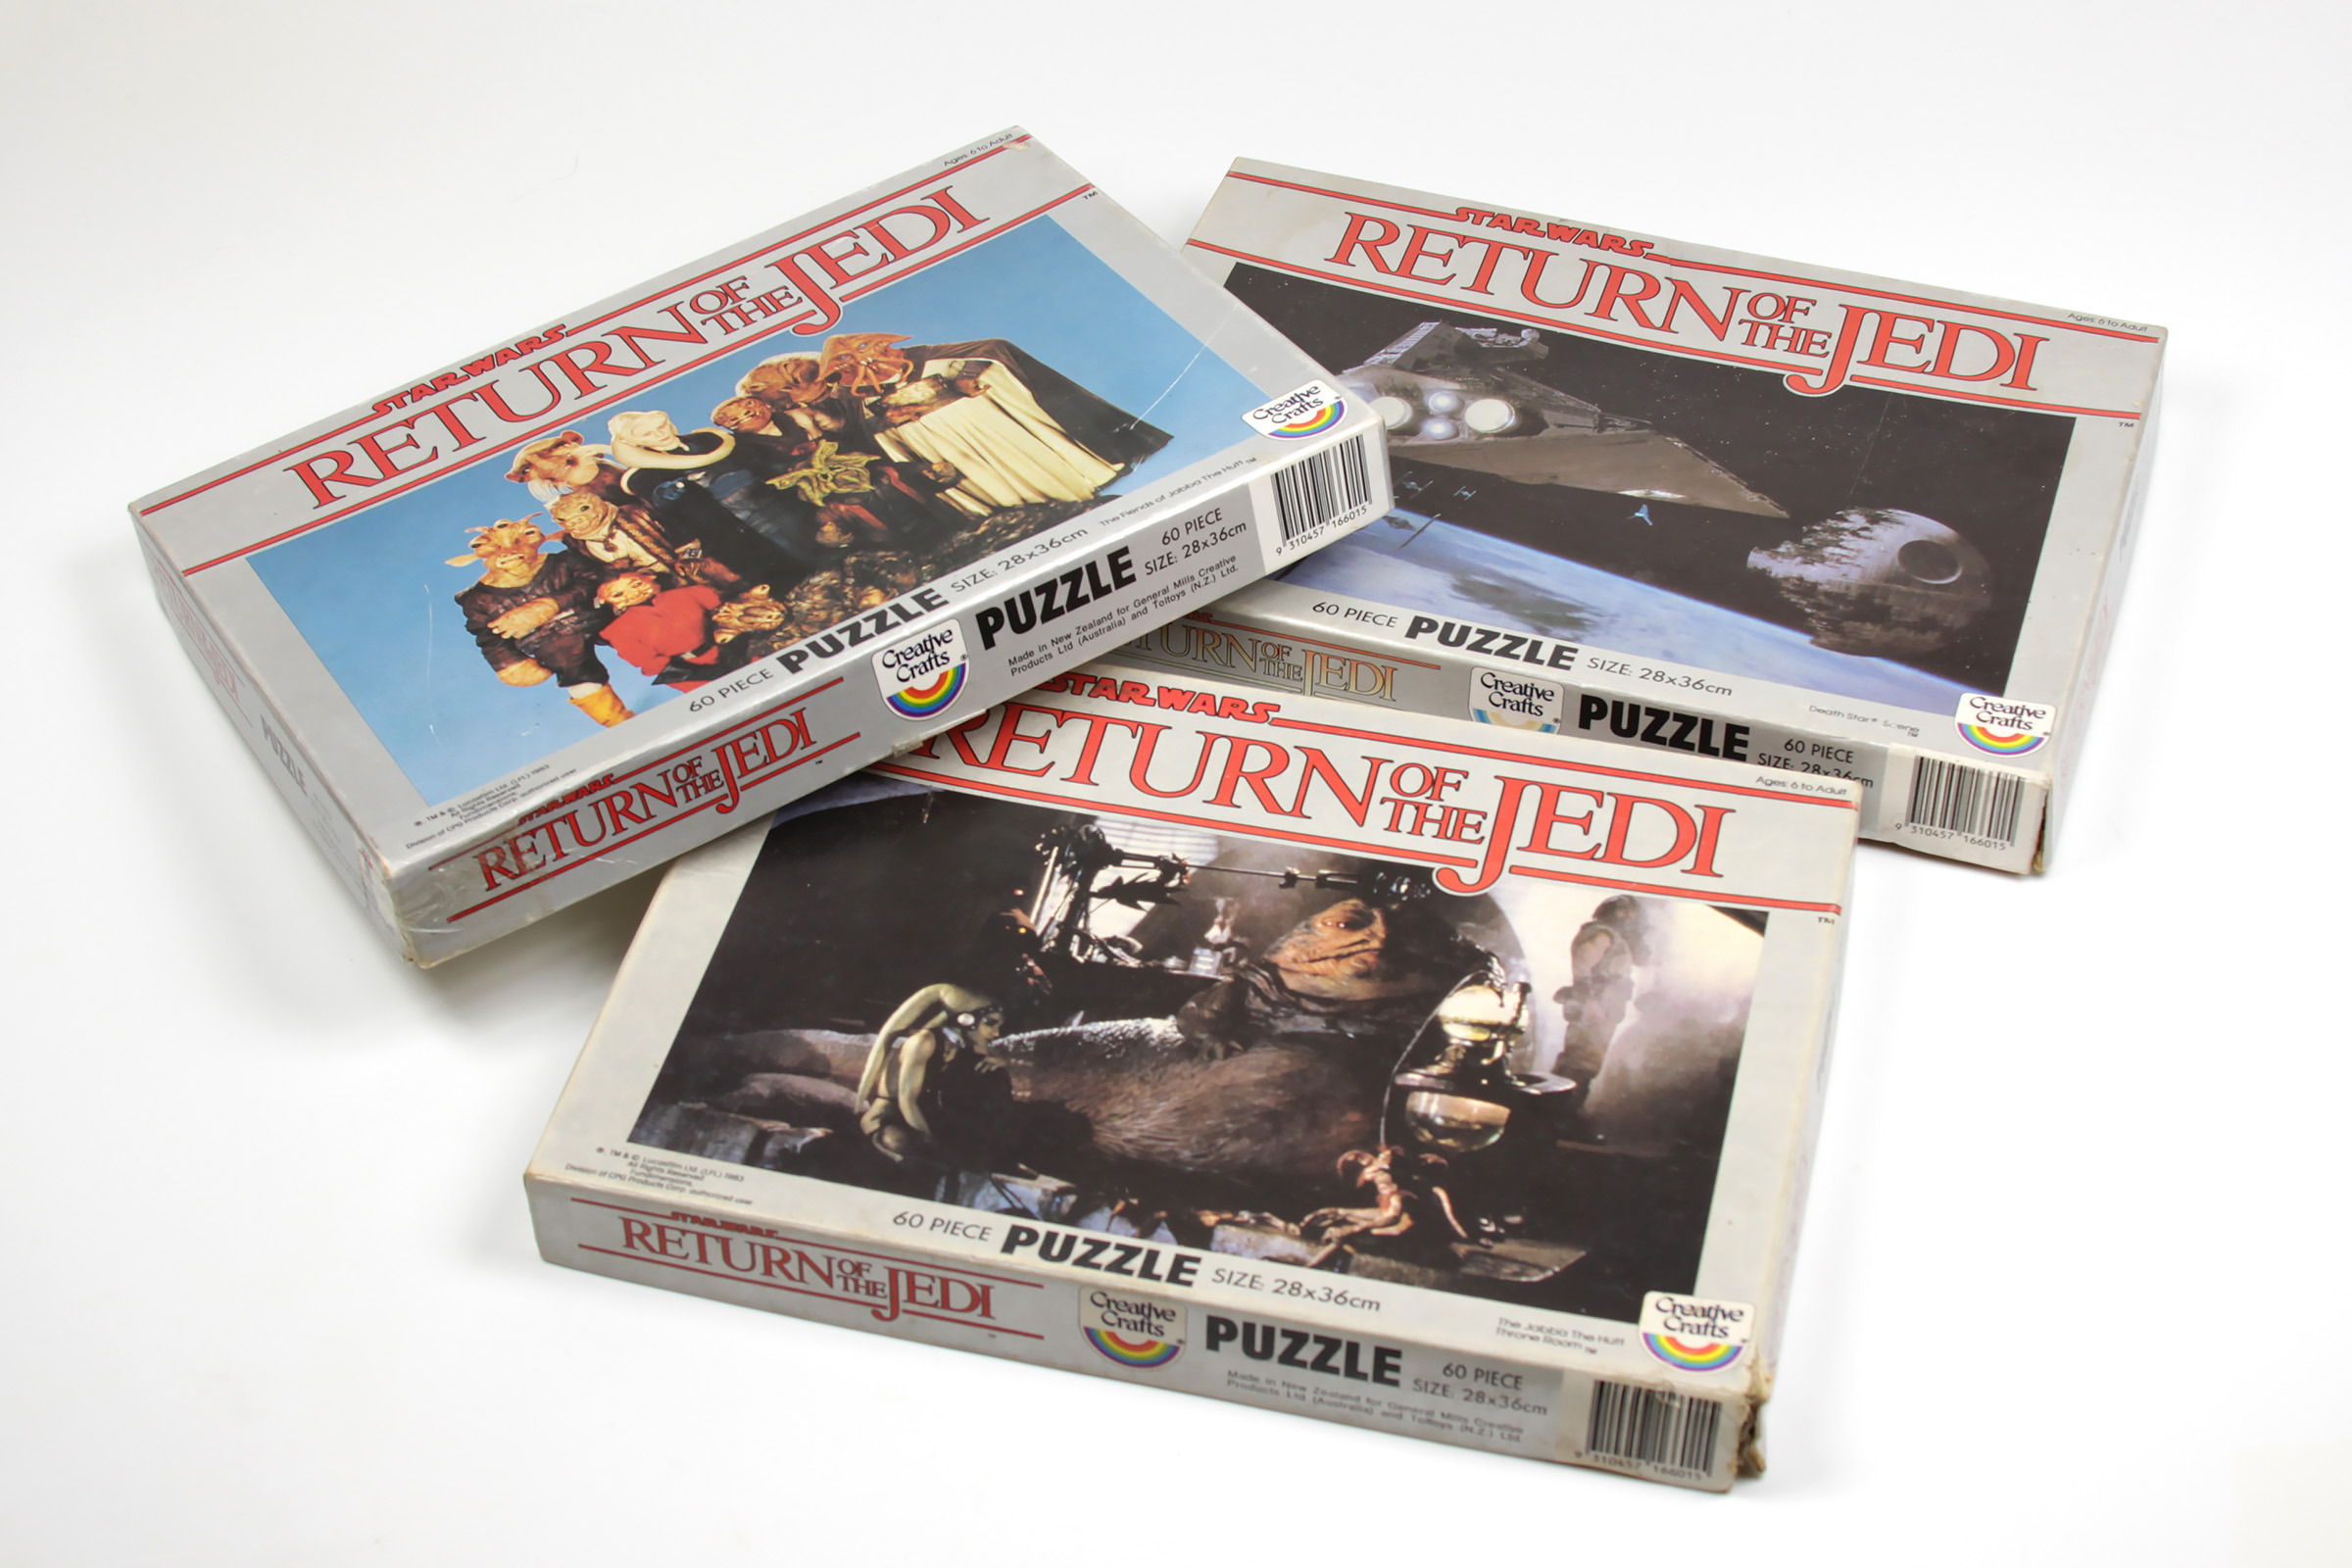 Creative Craft/Toltoys Return of the Jedi Jigsaw Puzzles